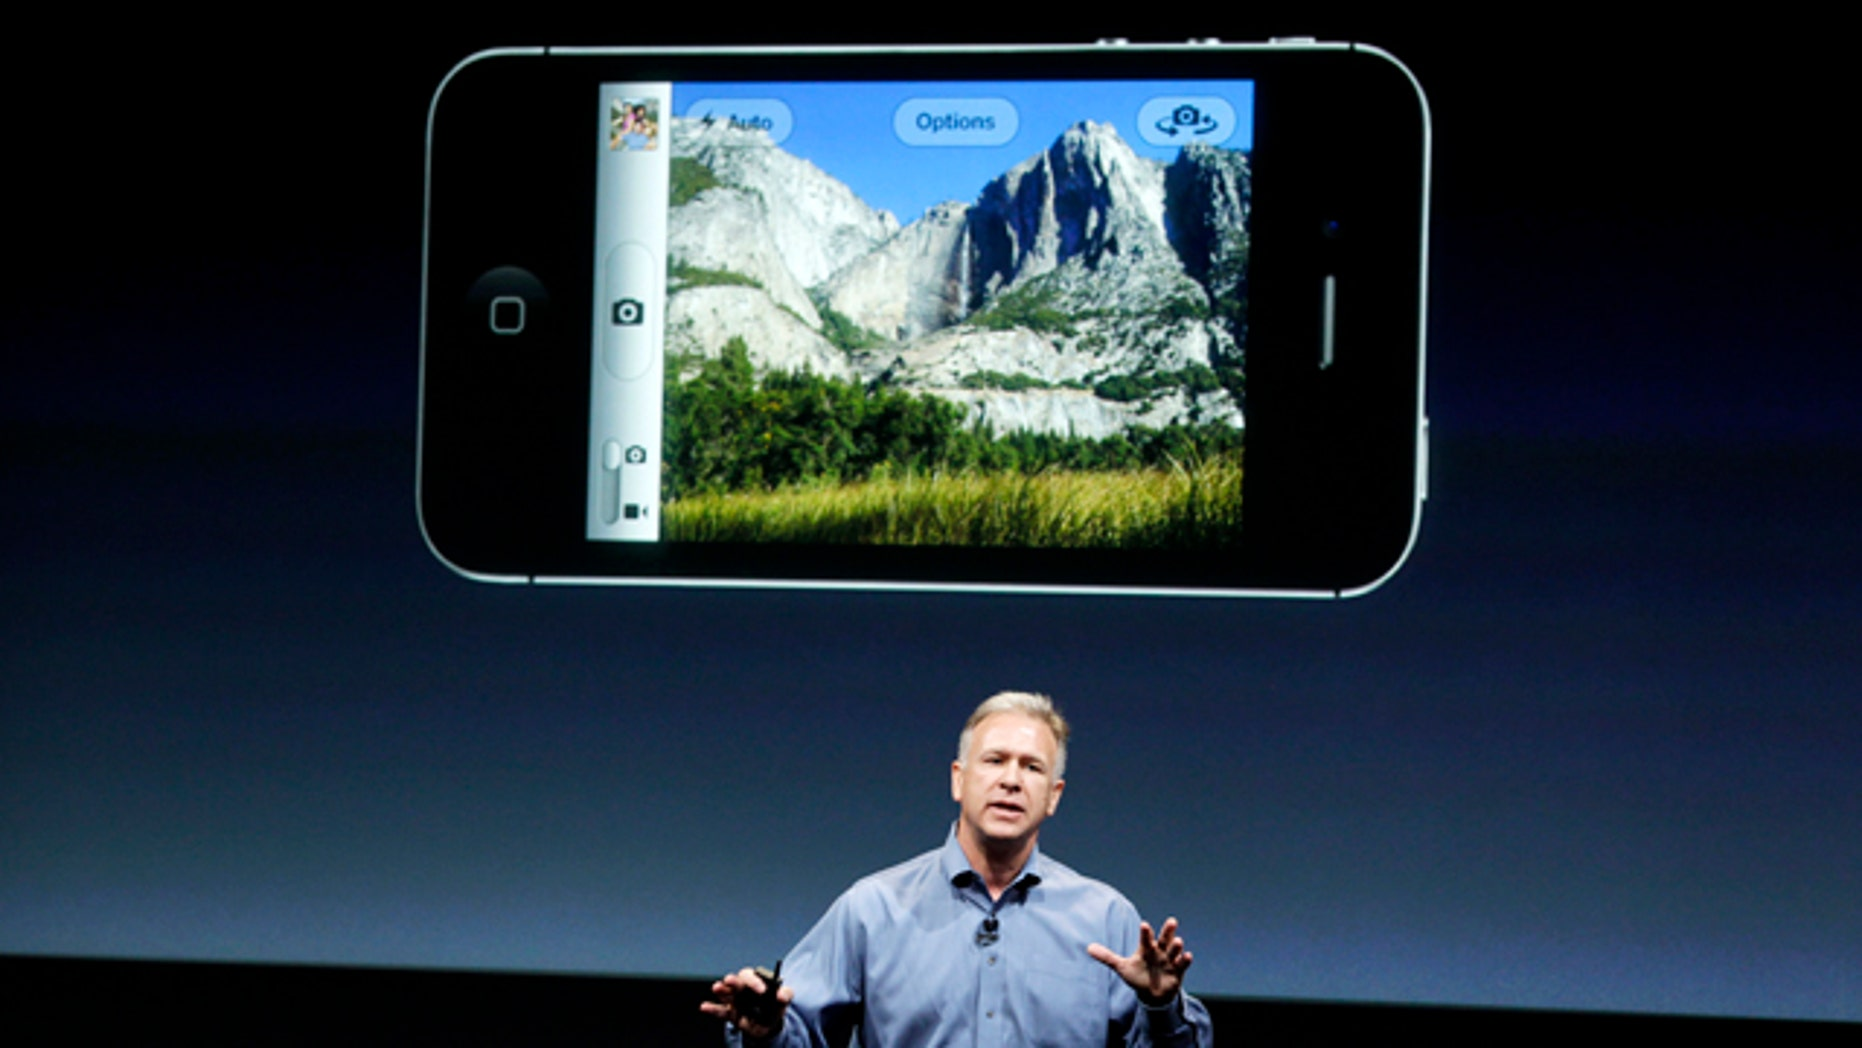 The iPhone 4S is the must-have gadget this holiday season.